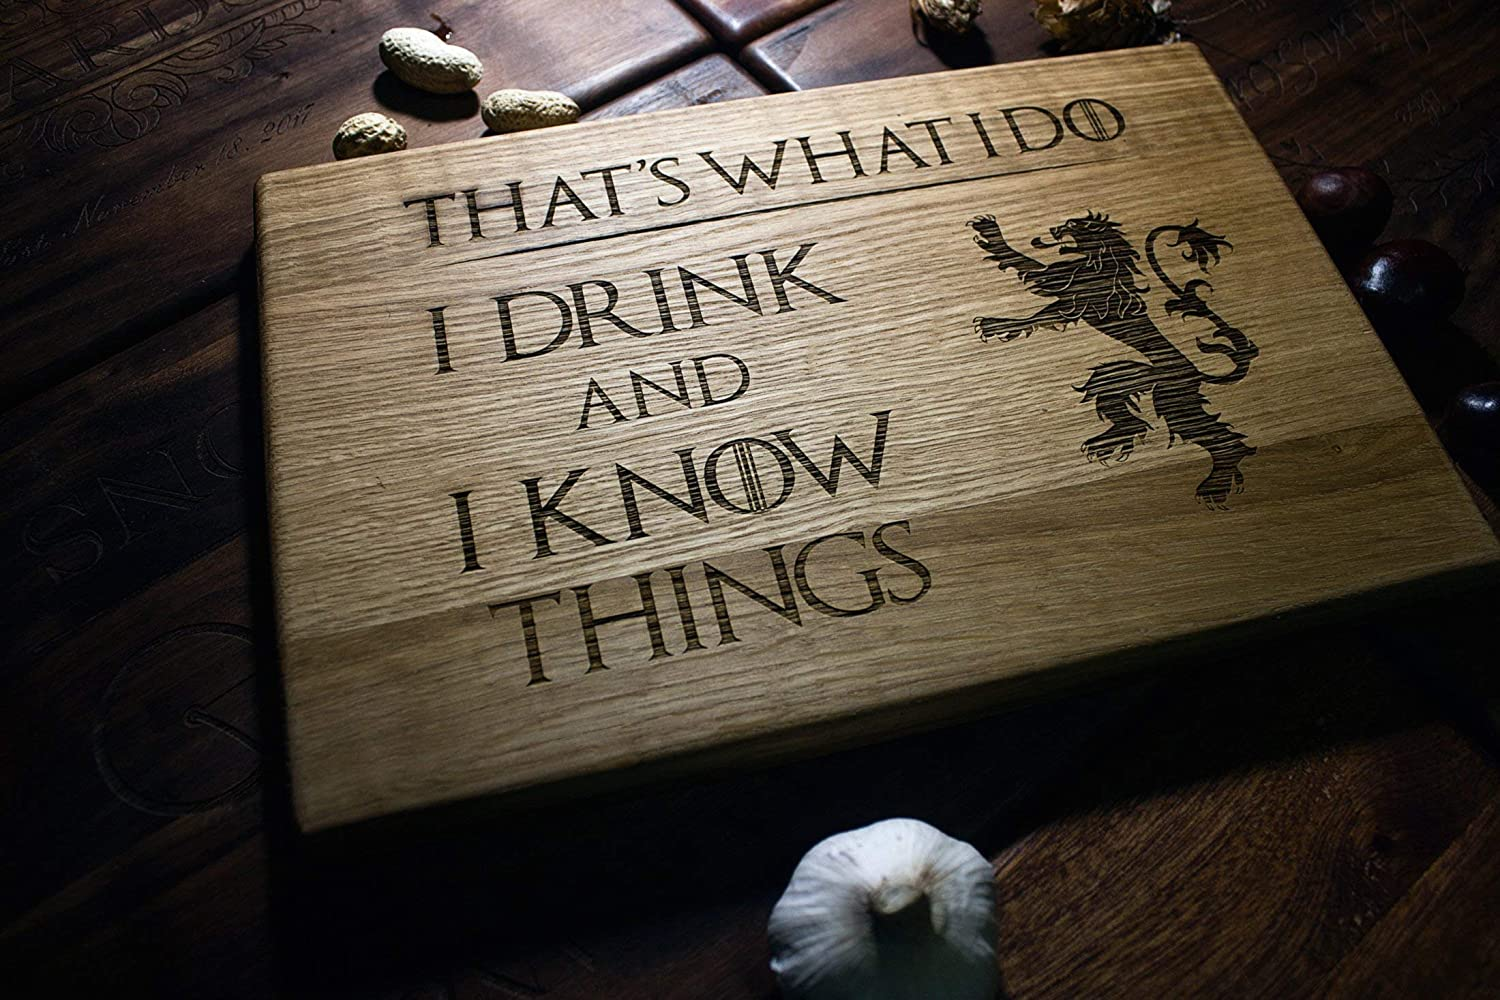 House Lannister Tyrion That's What I Do I Drink And I Know Things Cook Personalized Cutting Board Games of thrones Stark Engraved Custom Family Wedding Gift Anniversary Housewarming Birthday Christmas game14